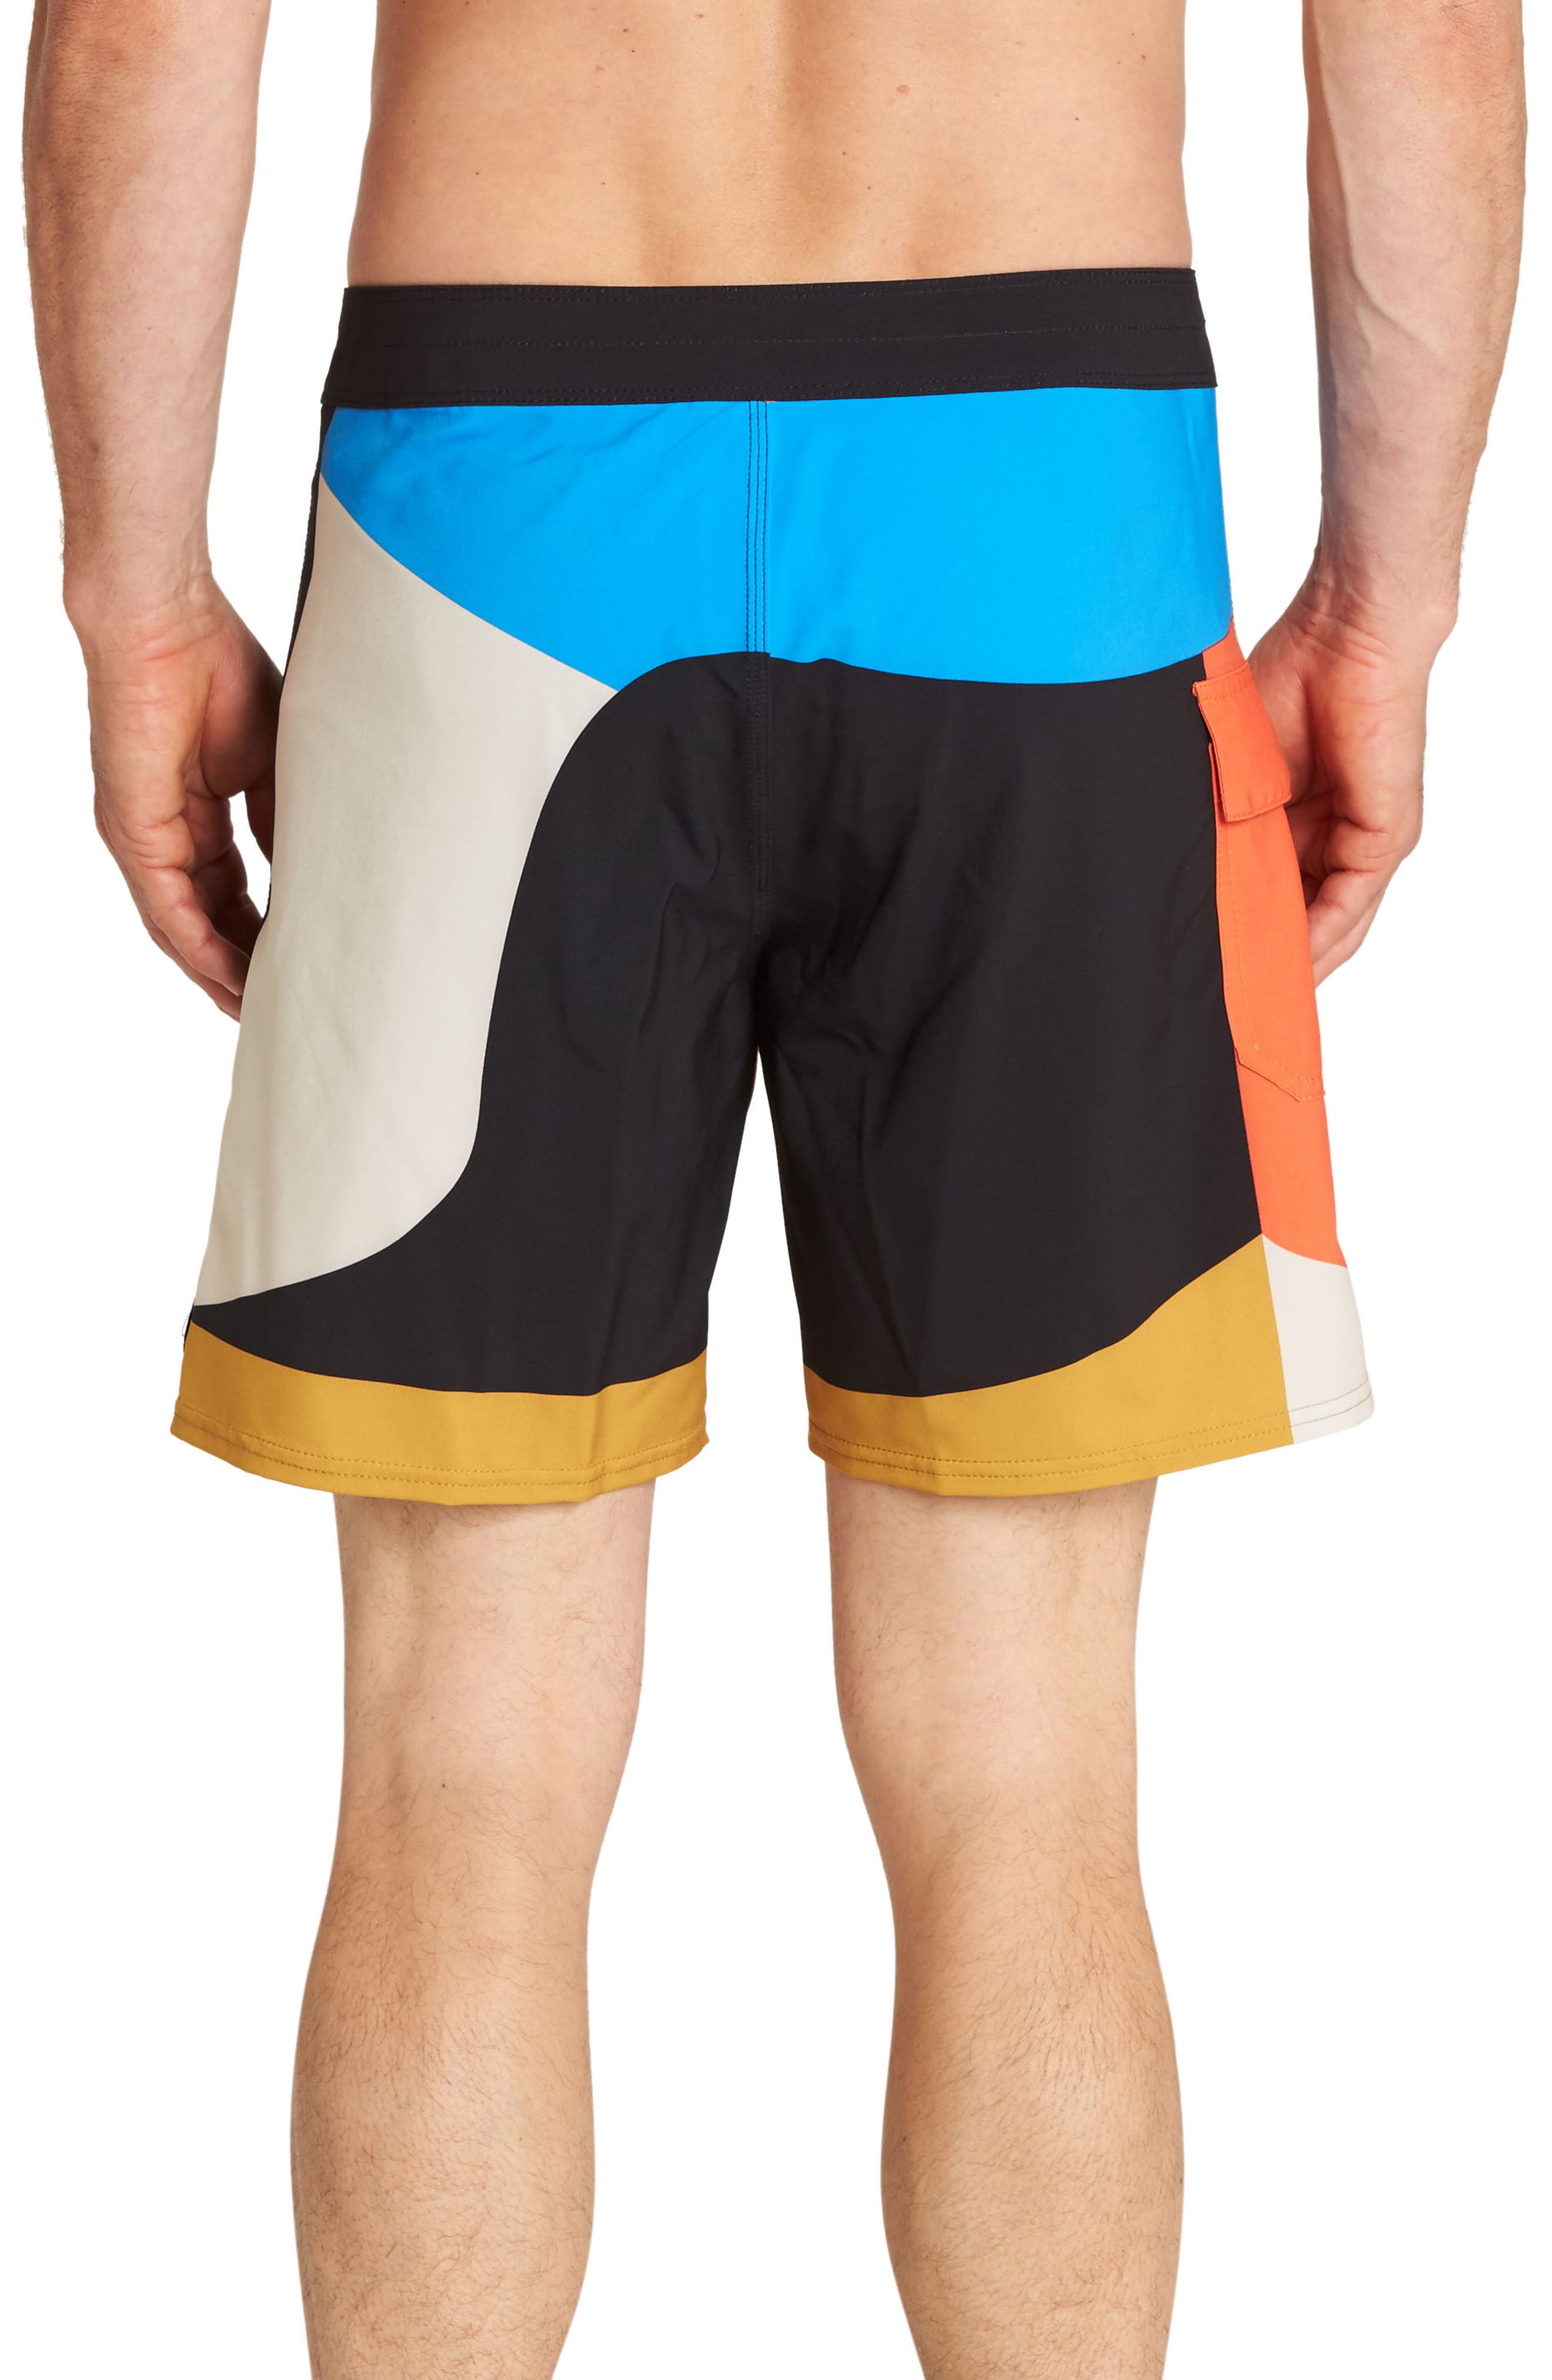 Vai Vai Swim Trunks,                             Alternate thumbnail 2, color,                             MULTI